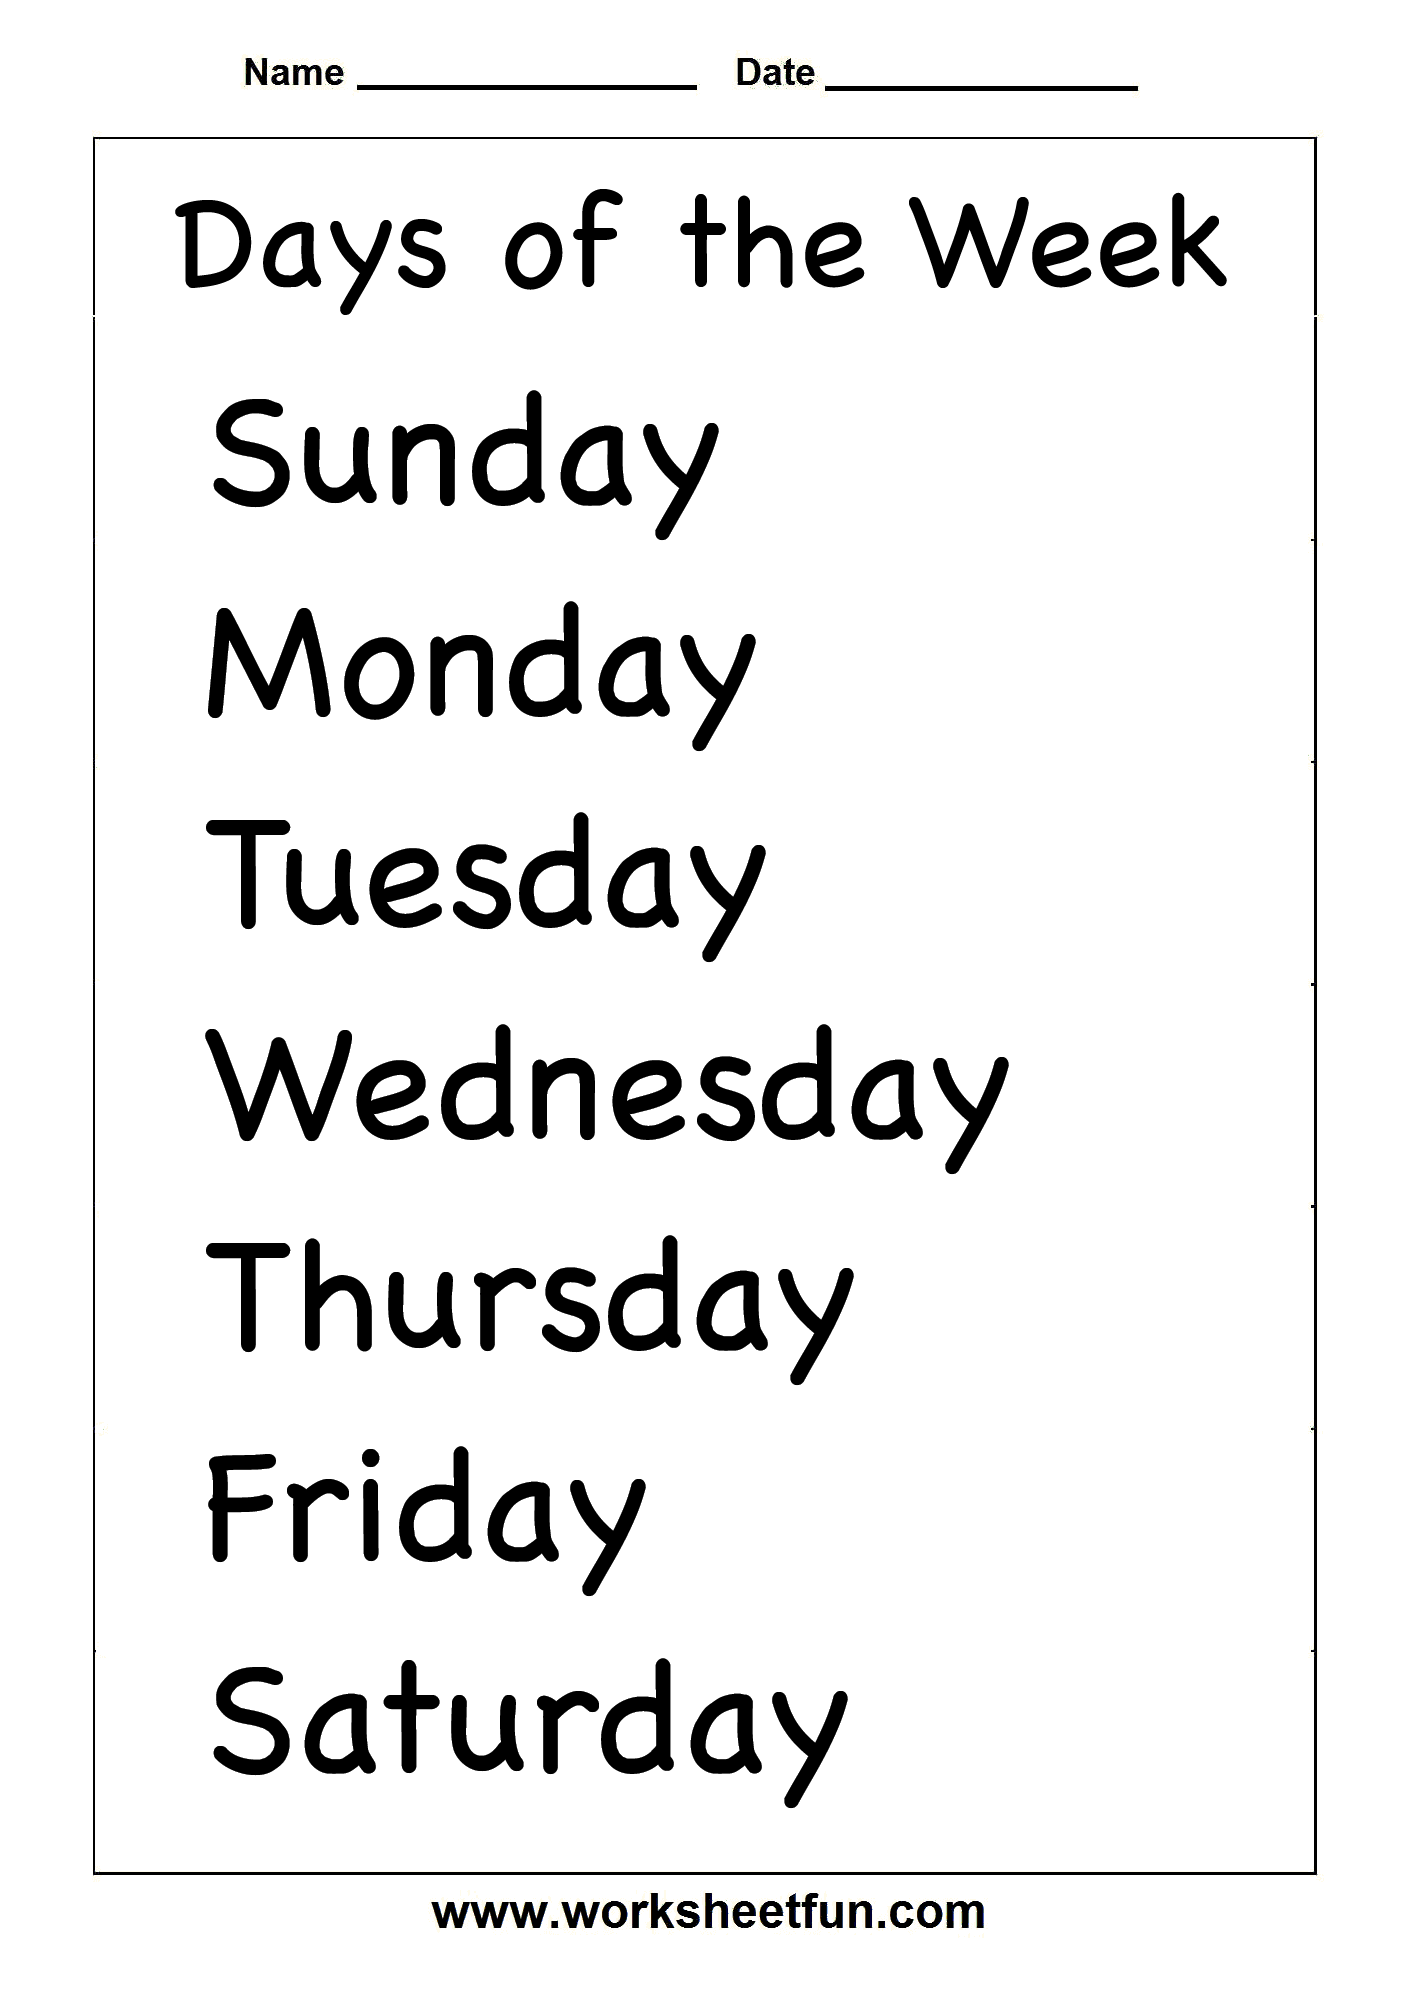 Days Of The Week Printable Coloring Pages